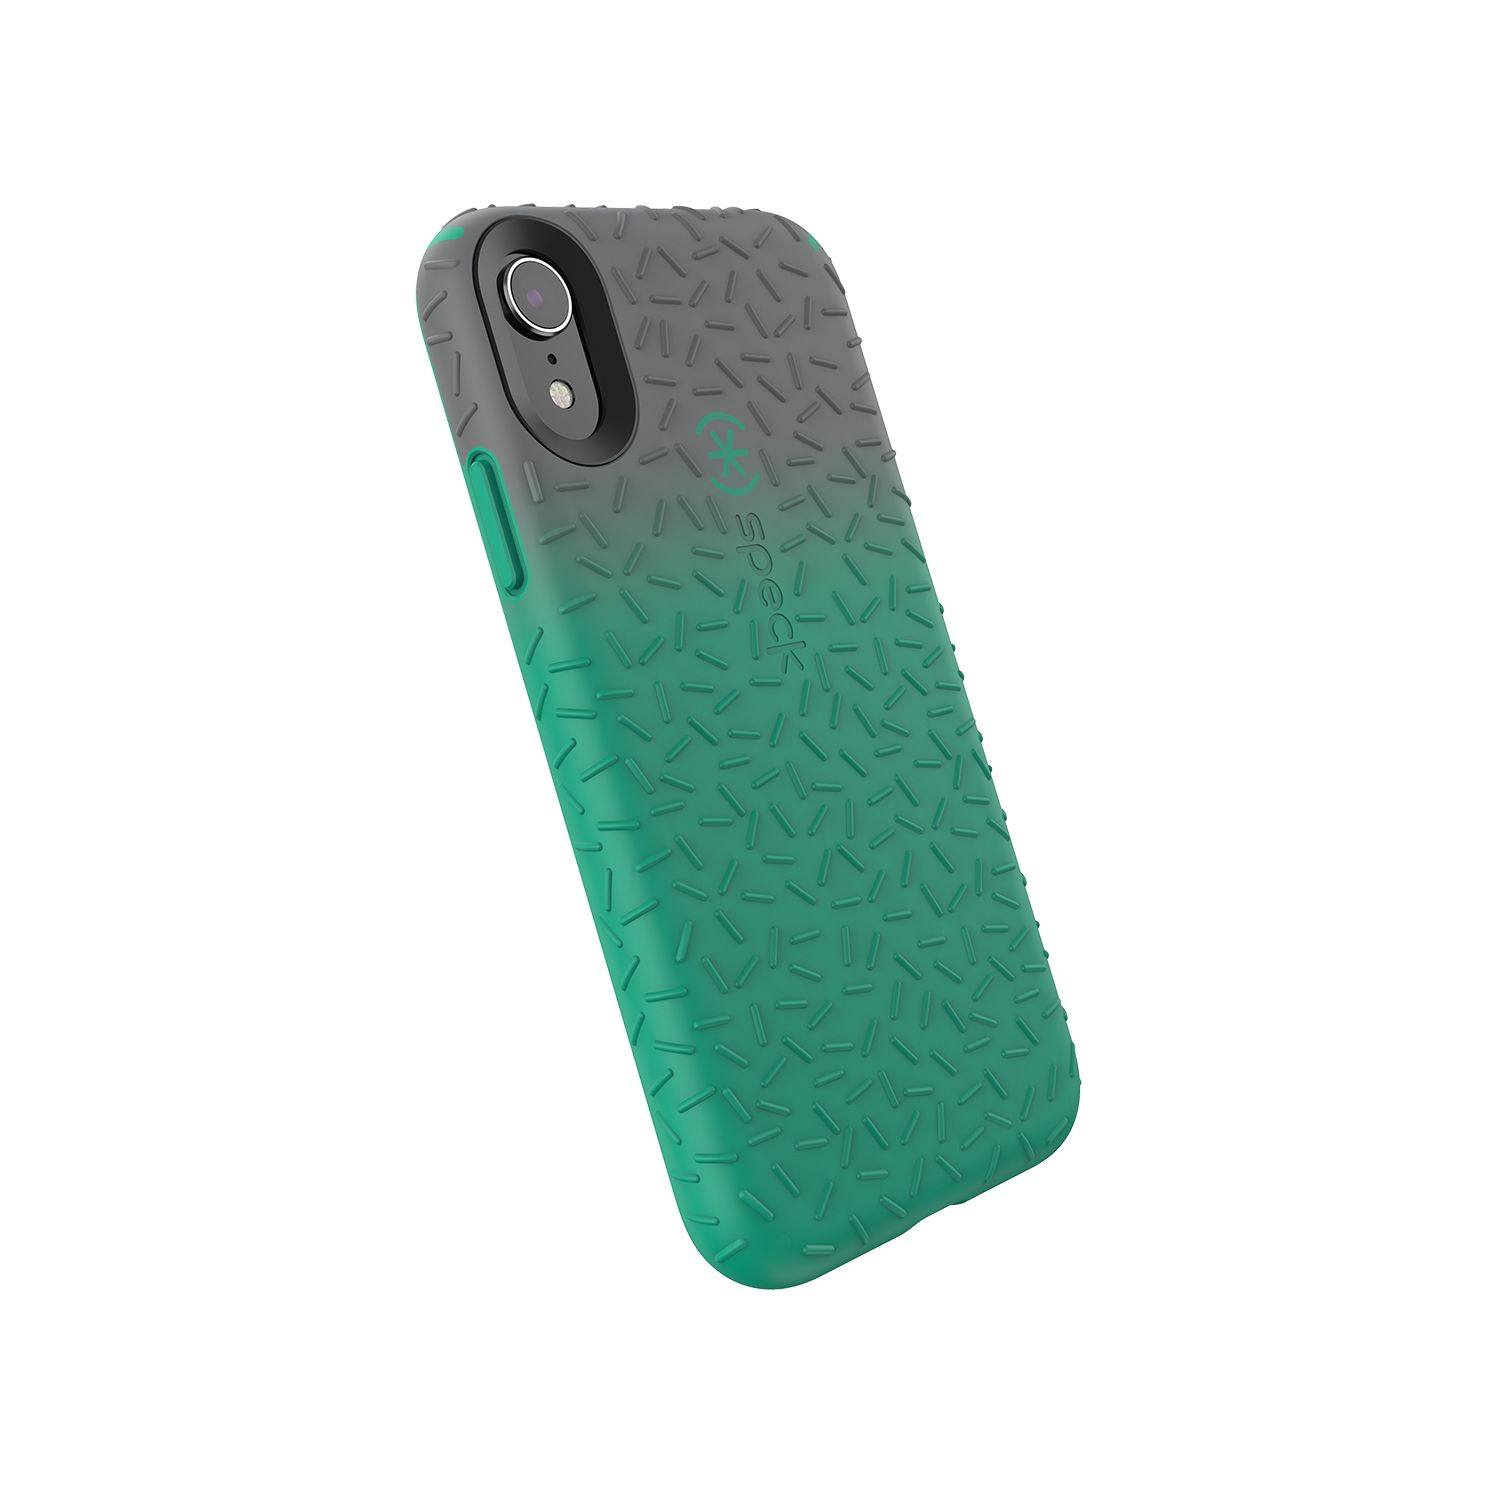 Candyshell fit textured iphone xr casescandyshell fit